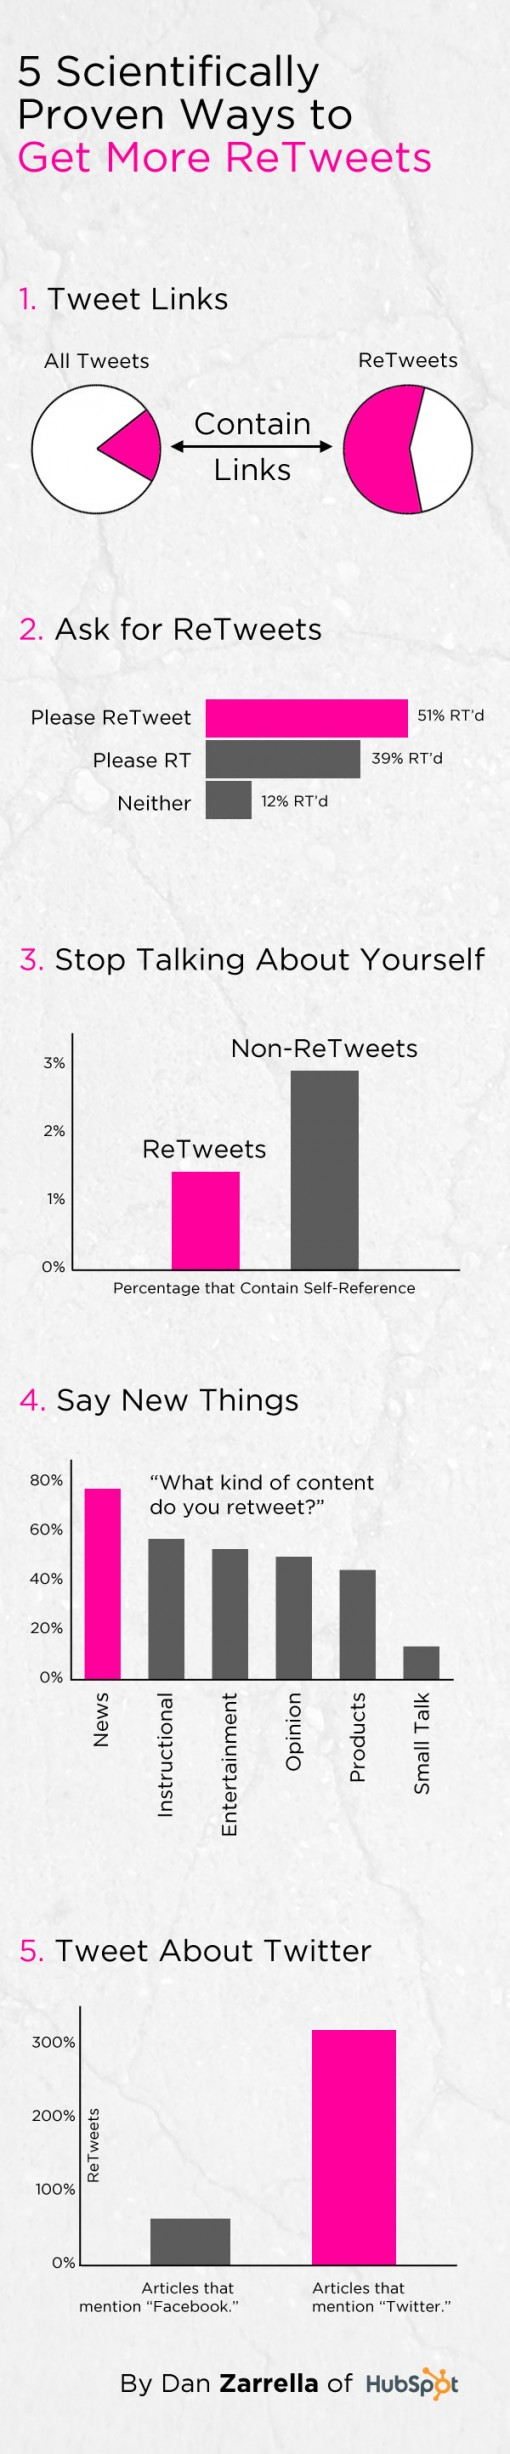 5 Scientifically Proven Ways to Get More ReTweets